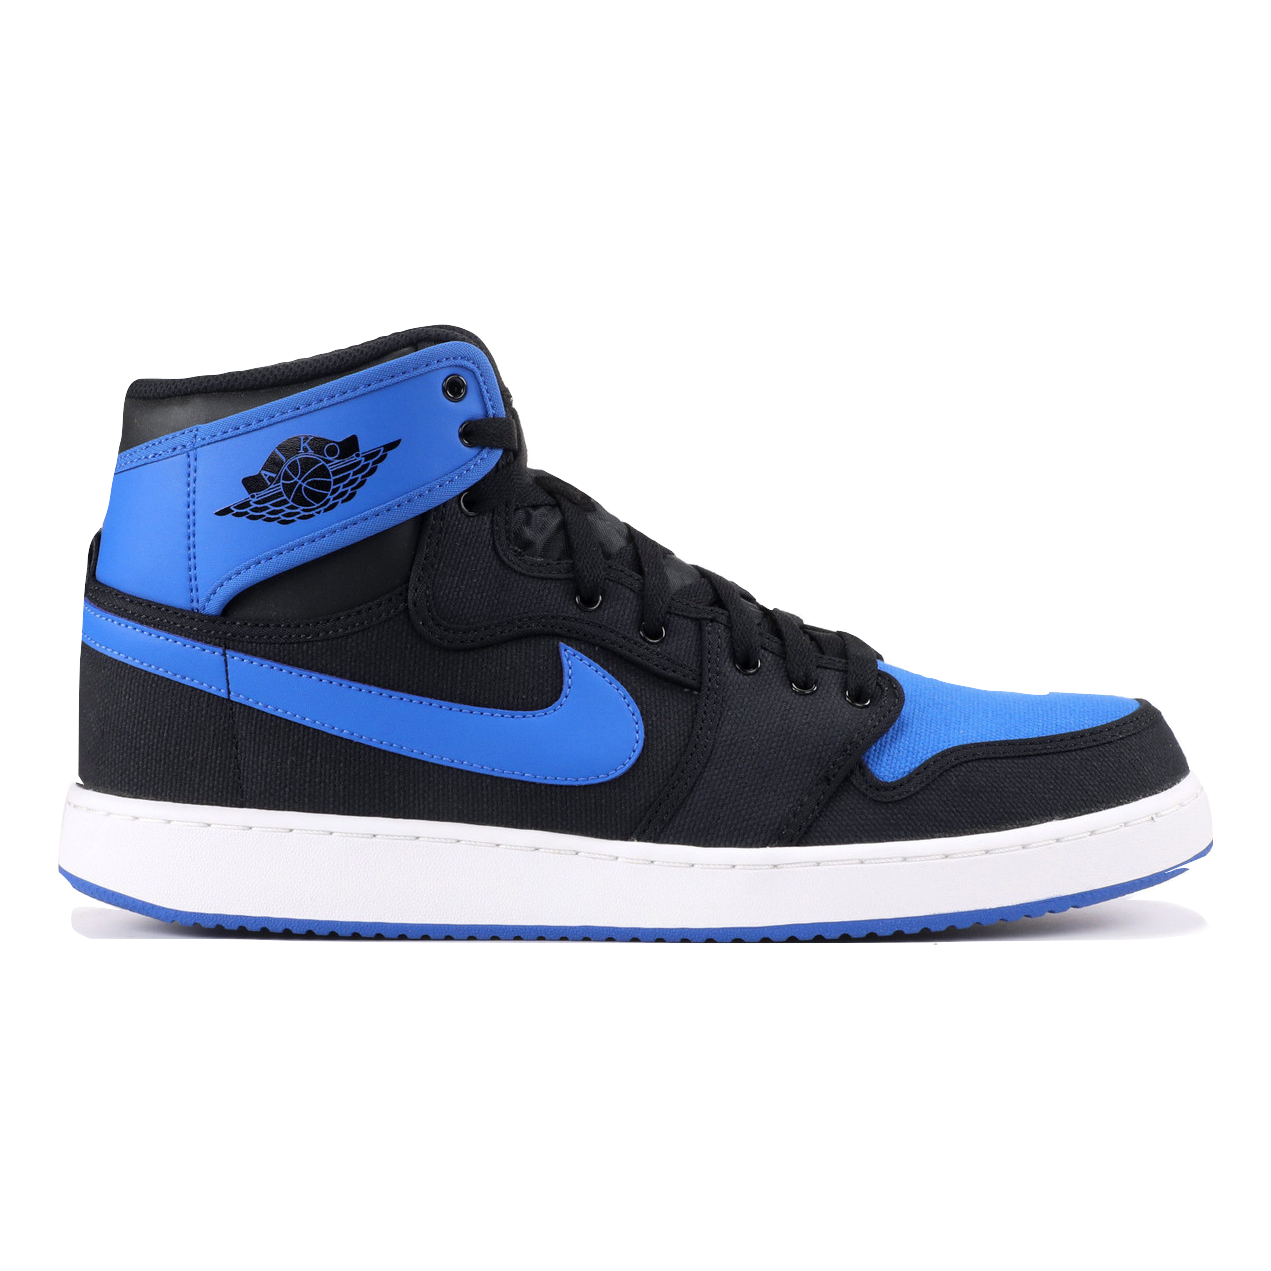 AJ 1 KO High OG - Royal